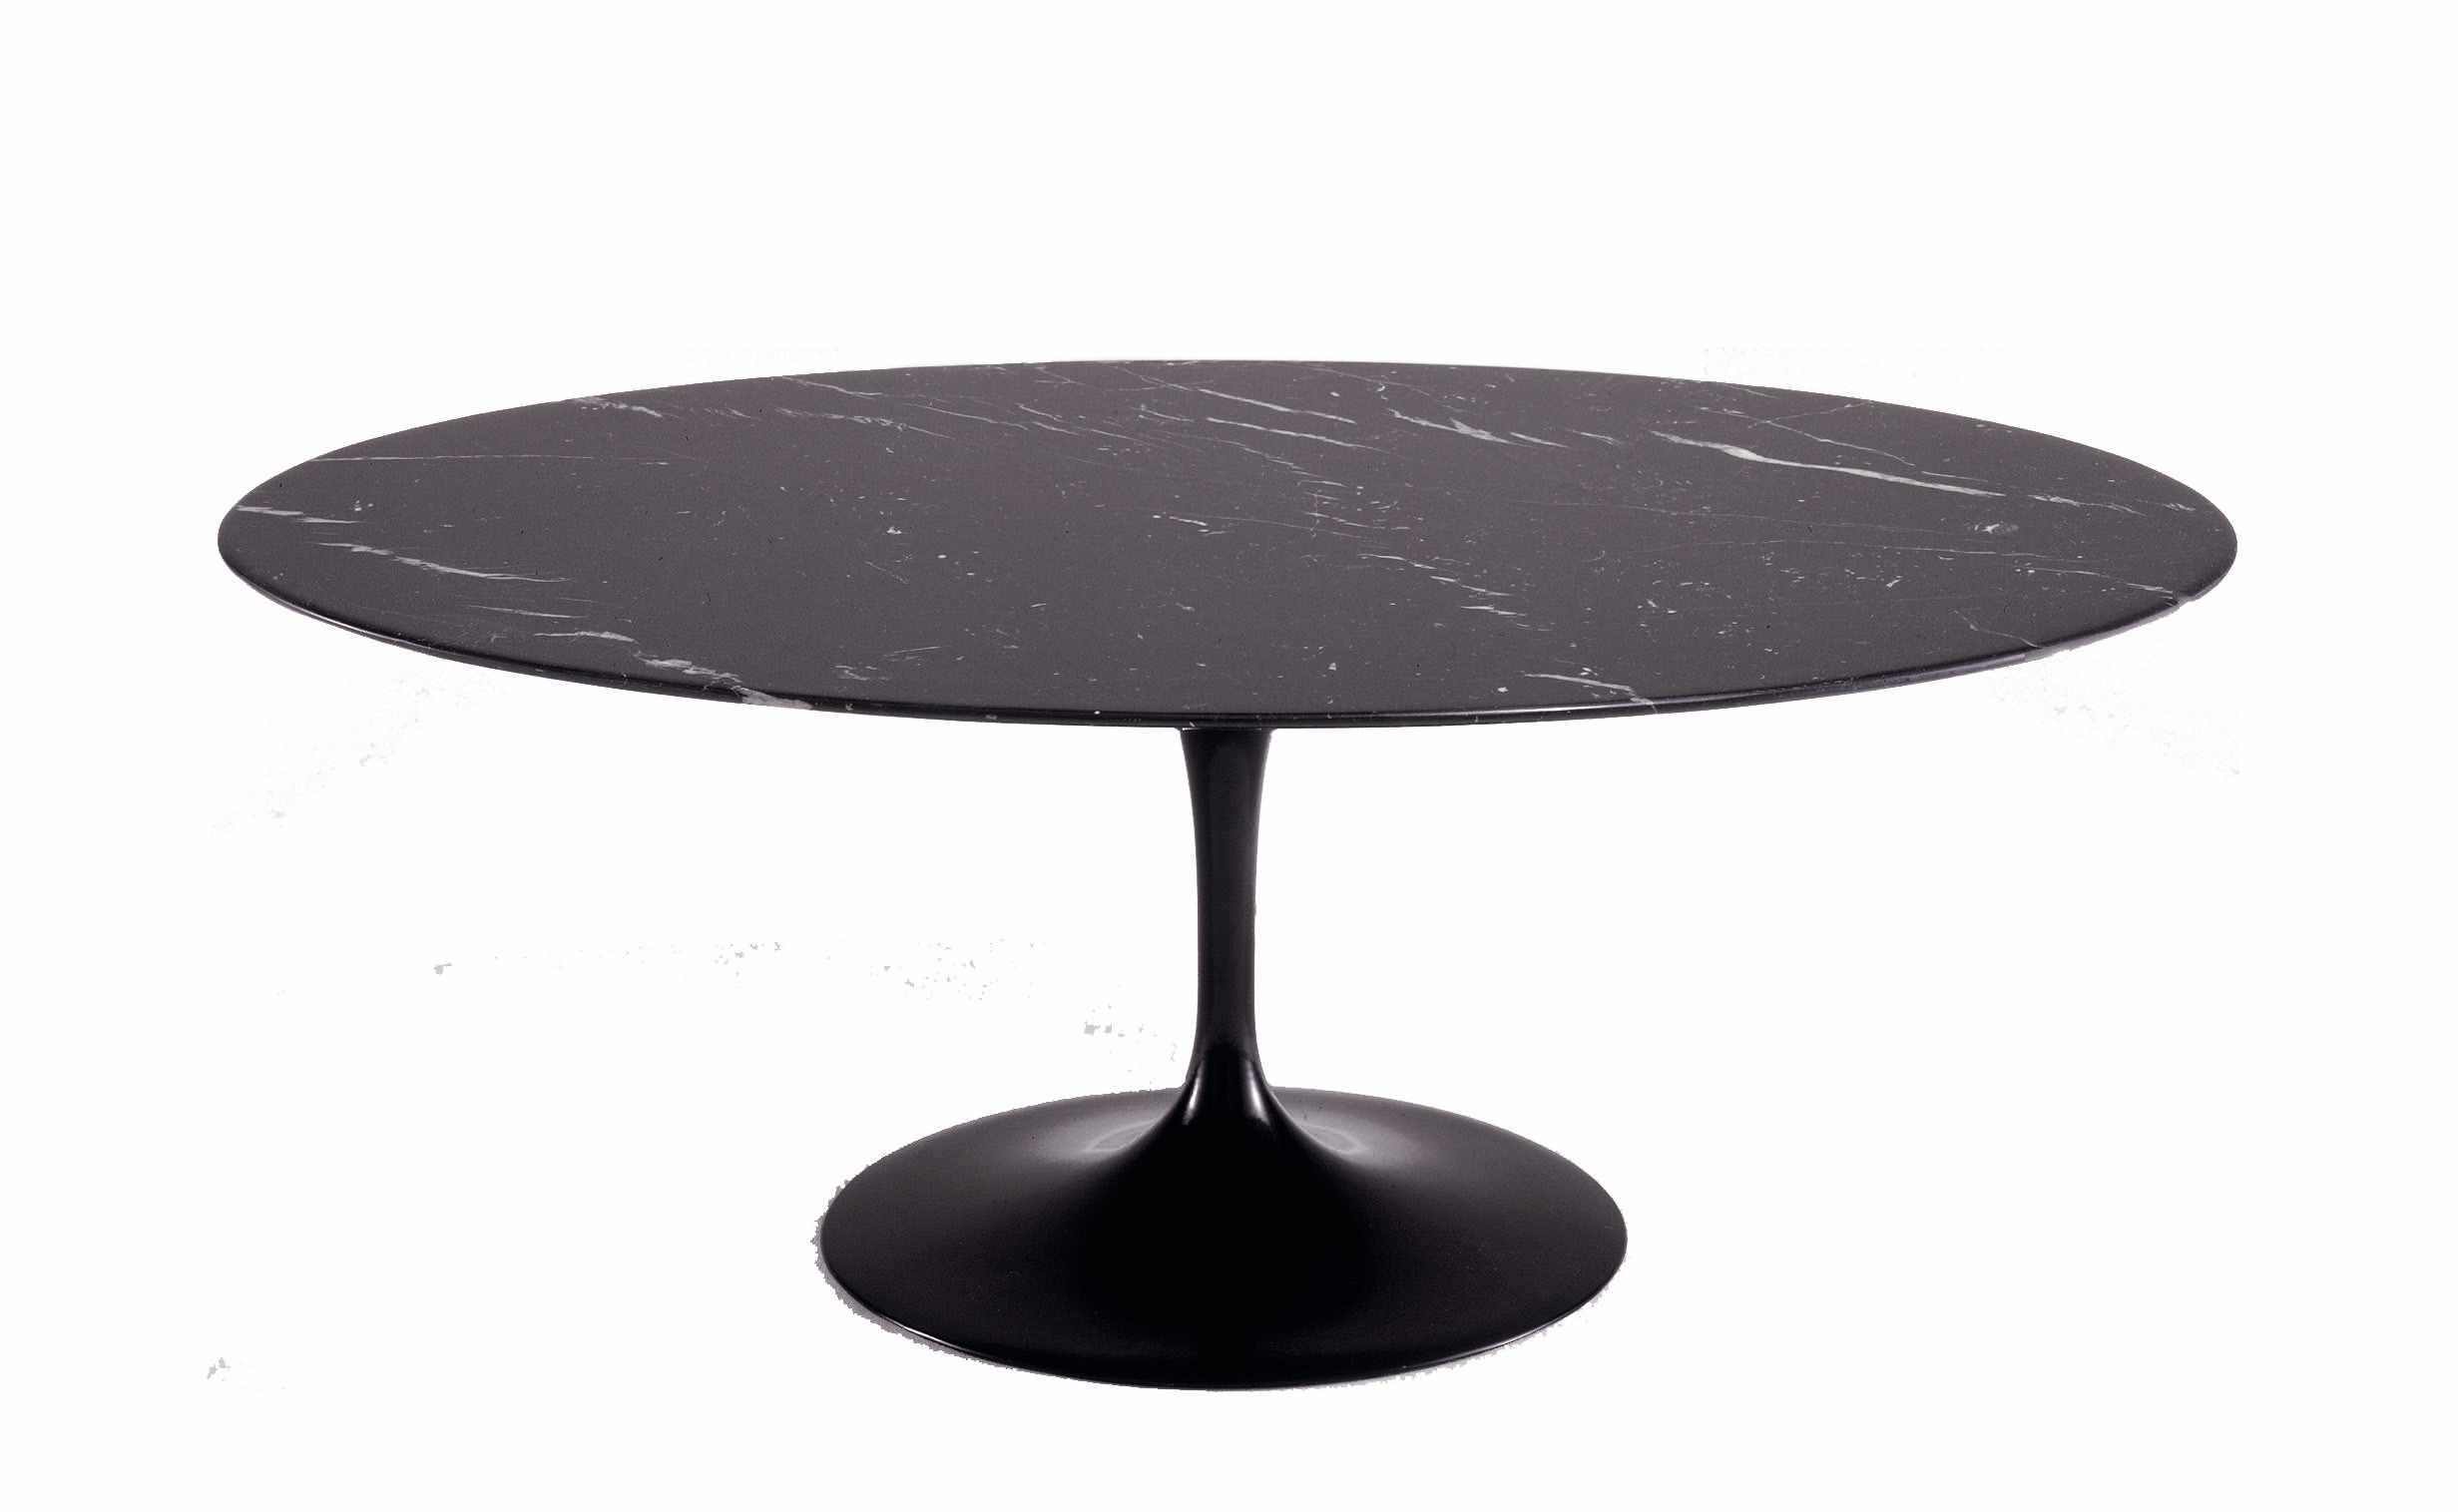 Saarinen for Knoll 'Tulip' table with 'Nero Marquina' marble top